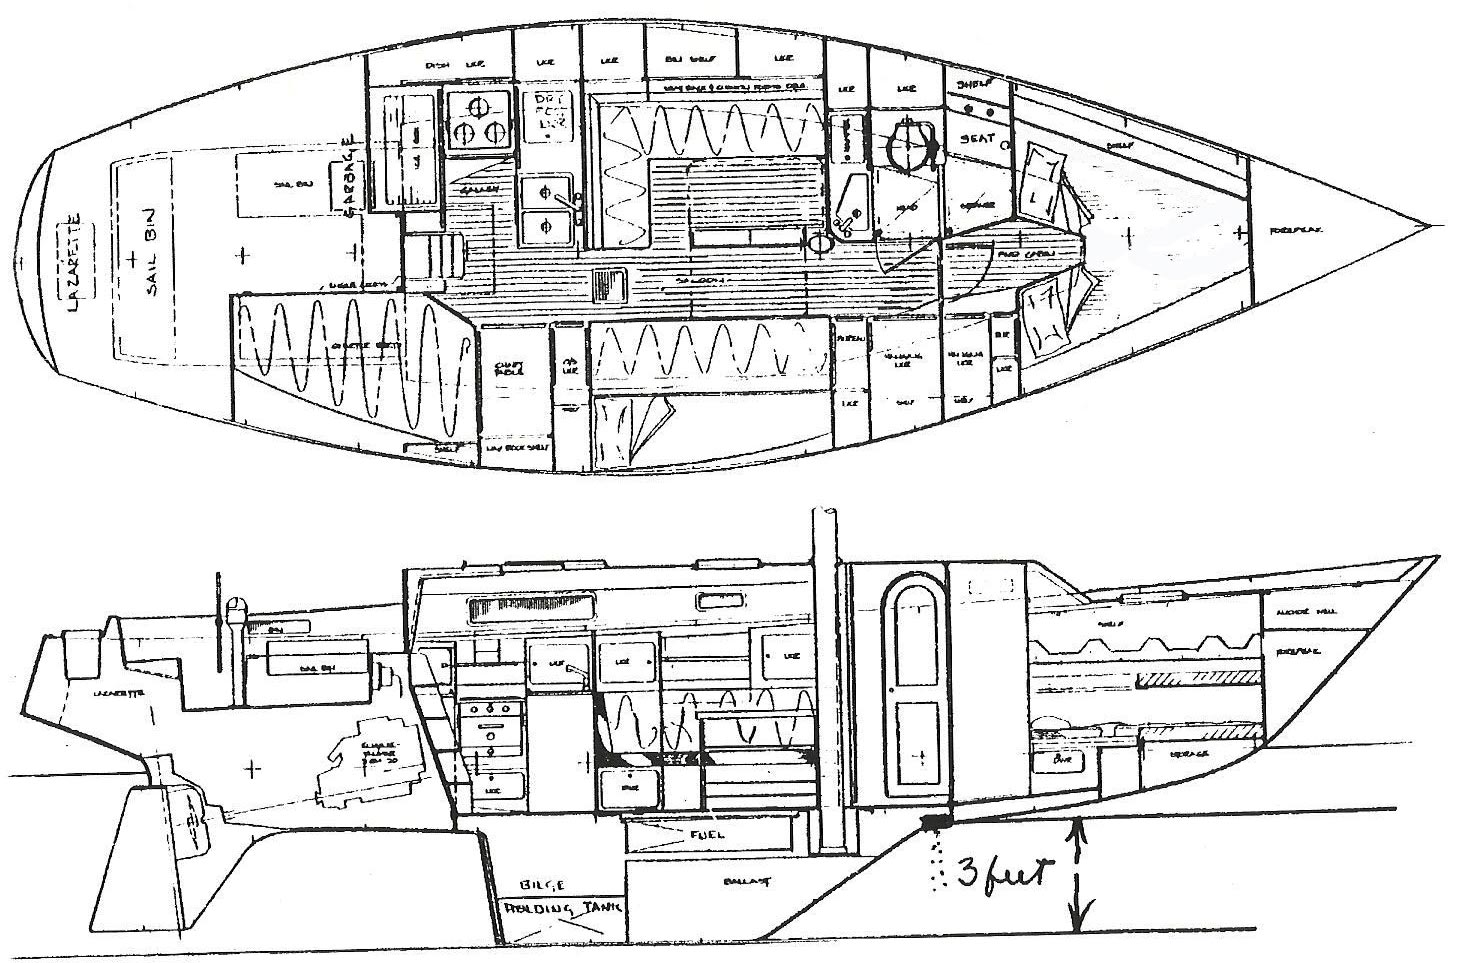 charlotte doyle ship diagram wiring for central air conditioner schematic get free image about